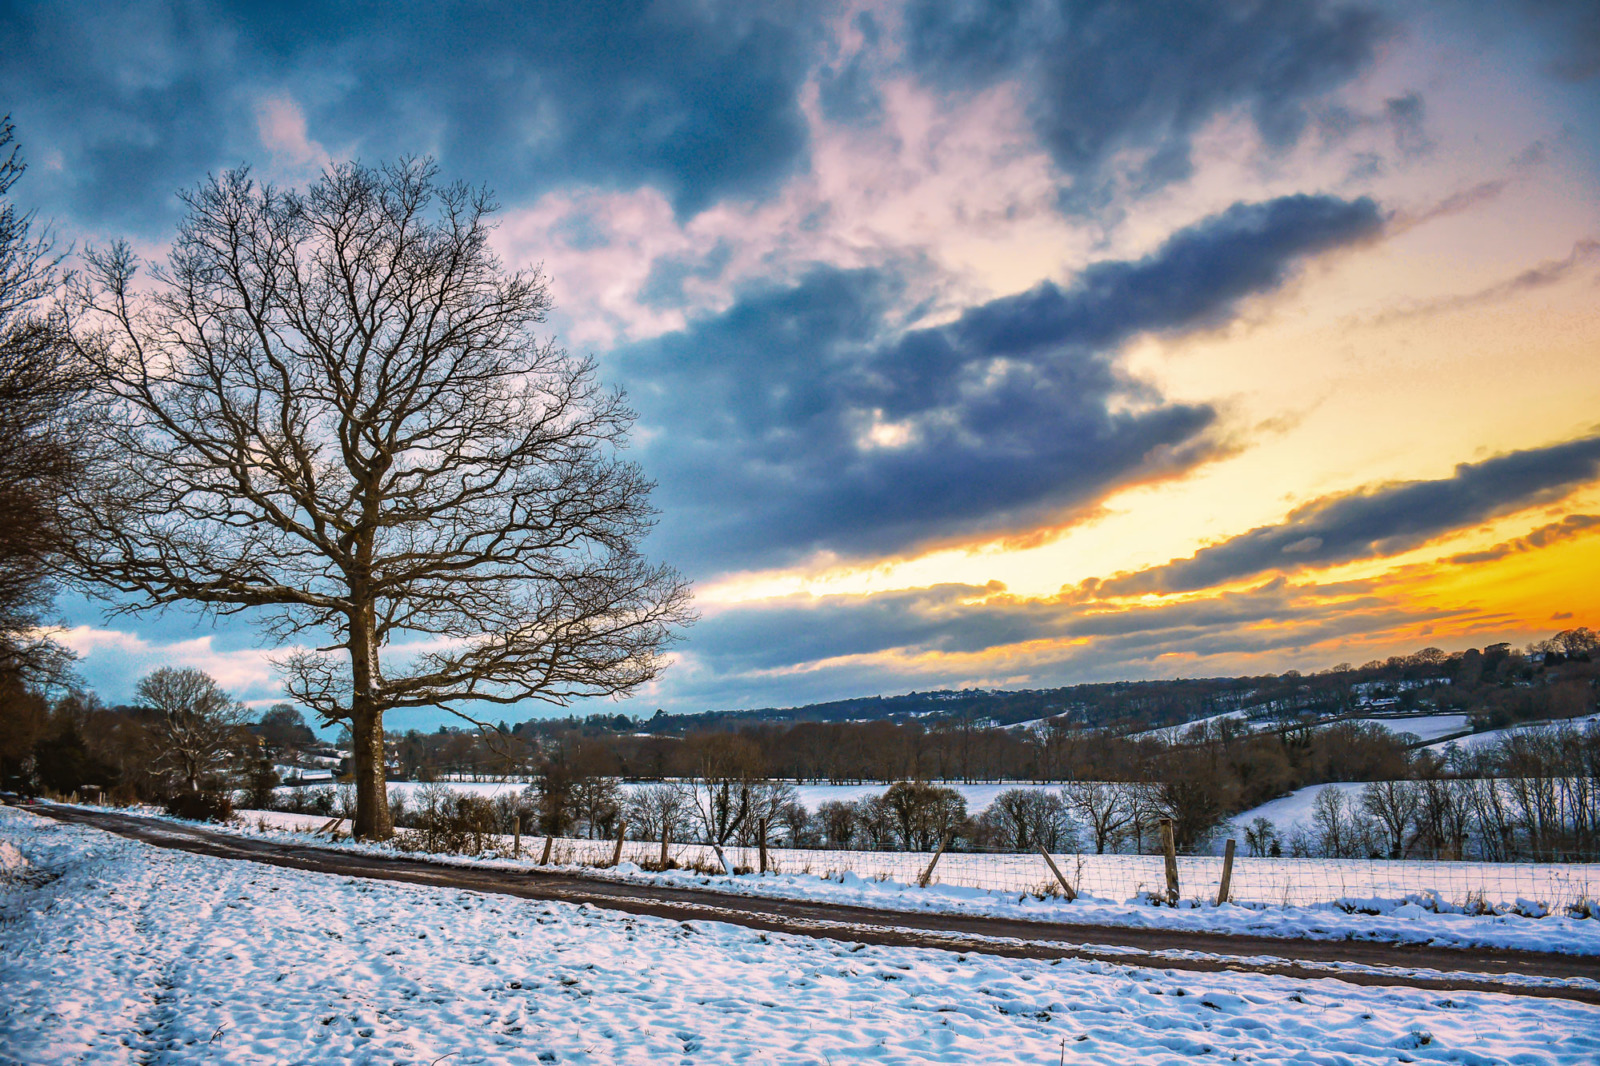 Burwash countryside in Winter © French Moments